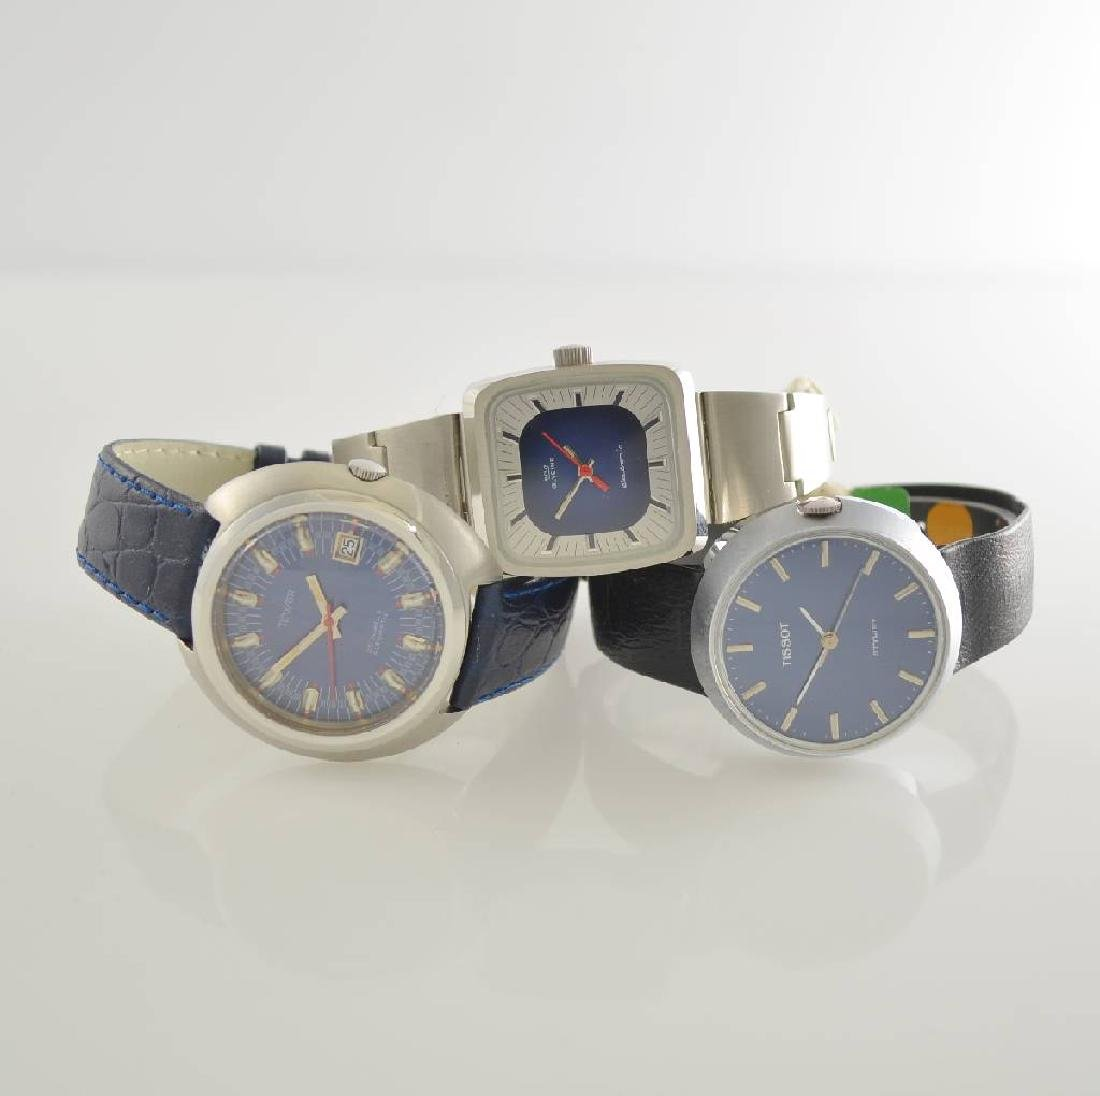 Set of 3 wristwatches in stainless steel